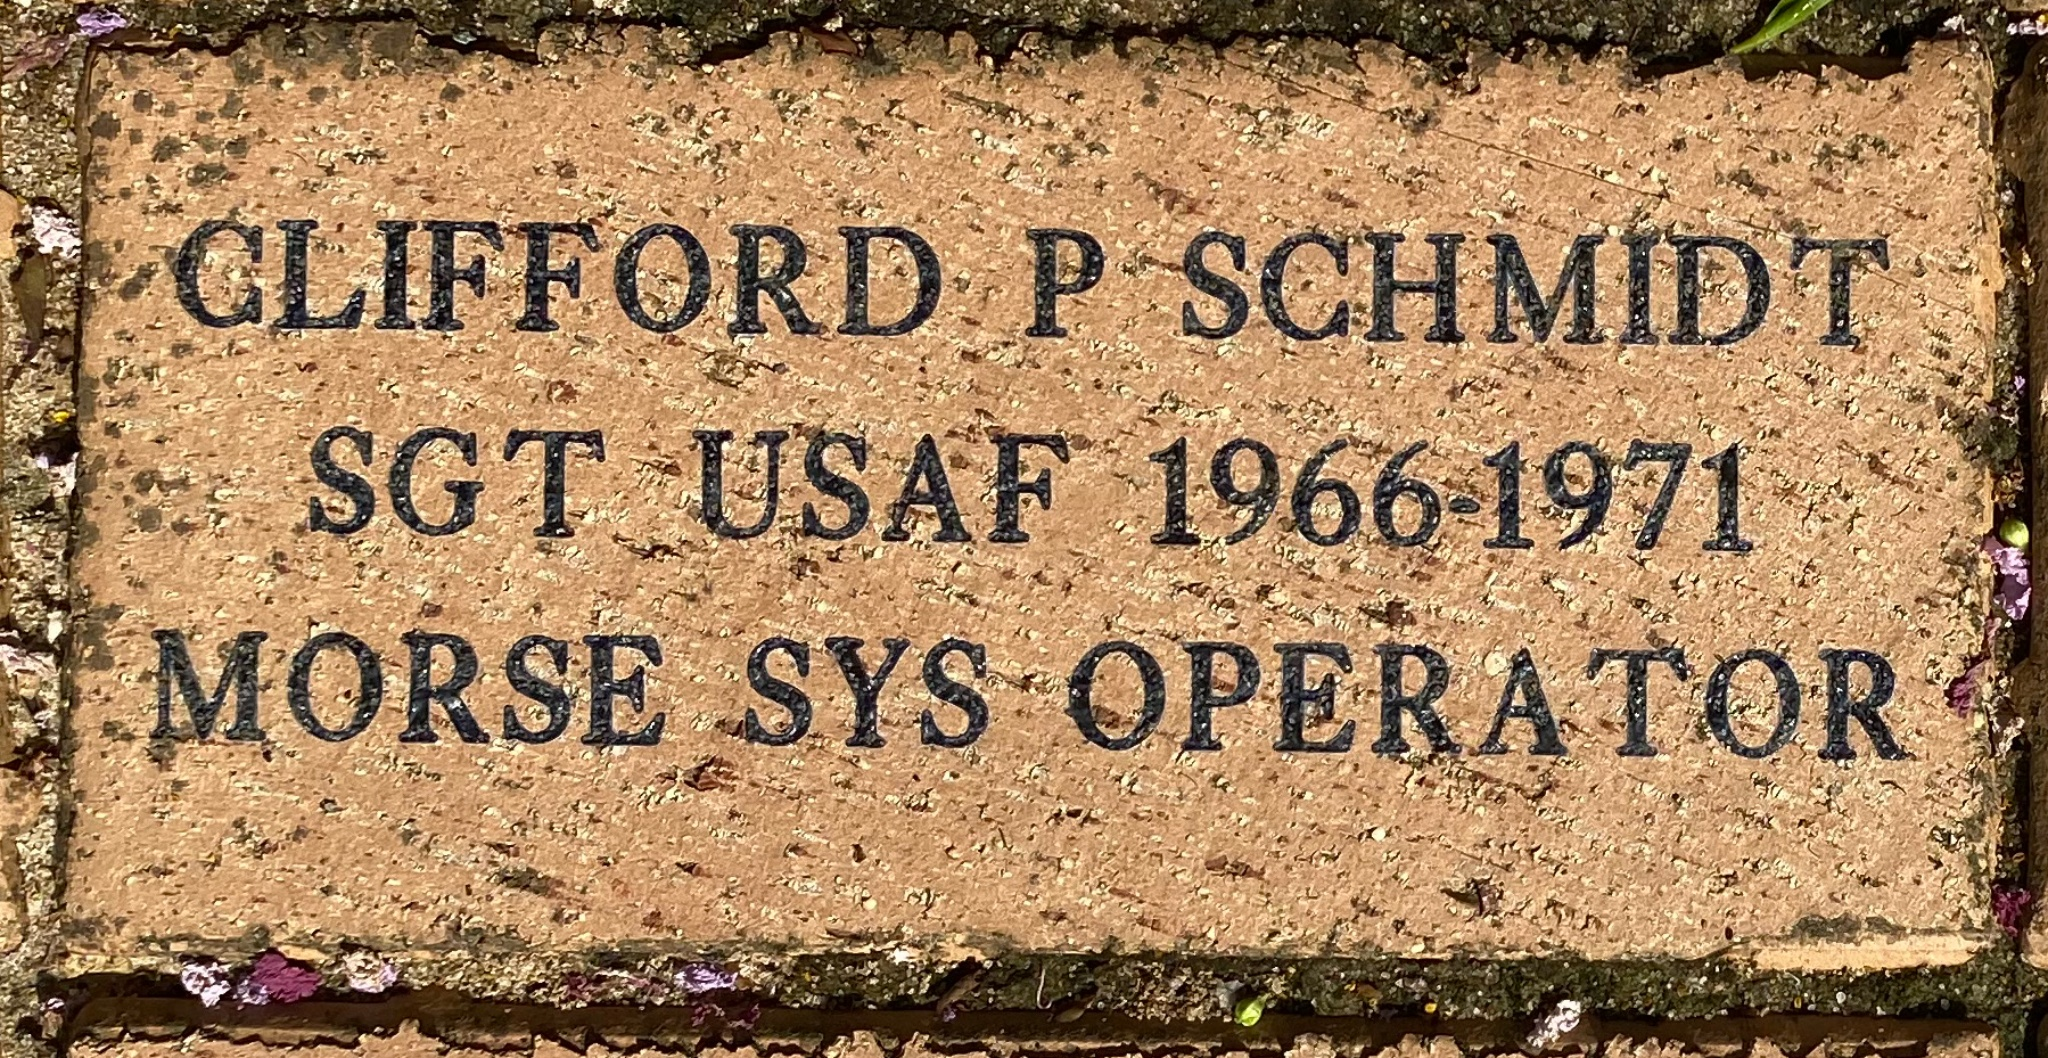 CLIFFORD P SCHMIDT SGT USAF 1966-1971 MORSE SYS OPERATOR